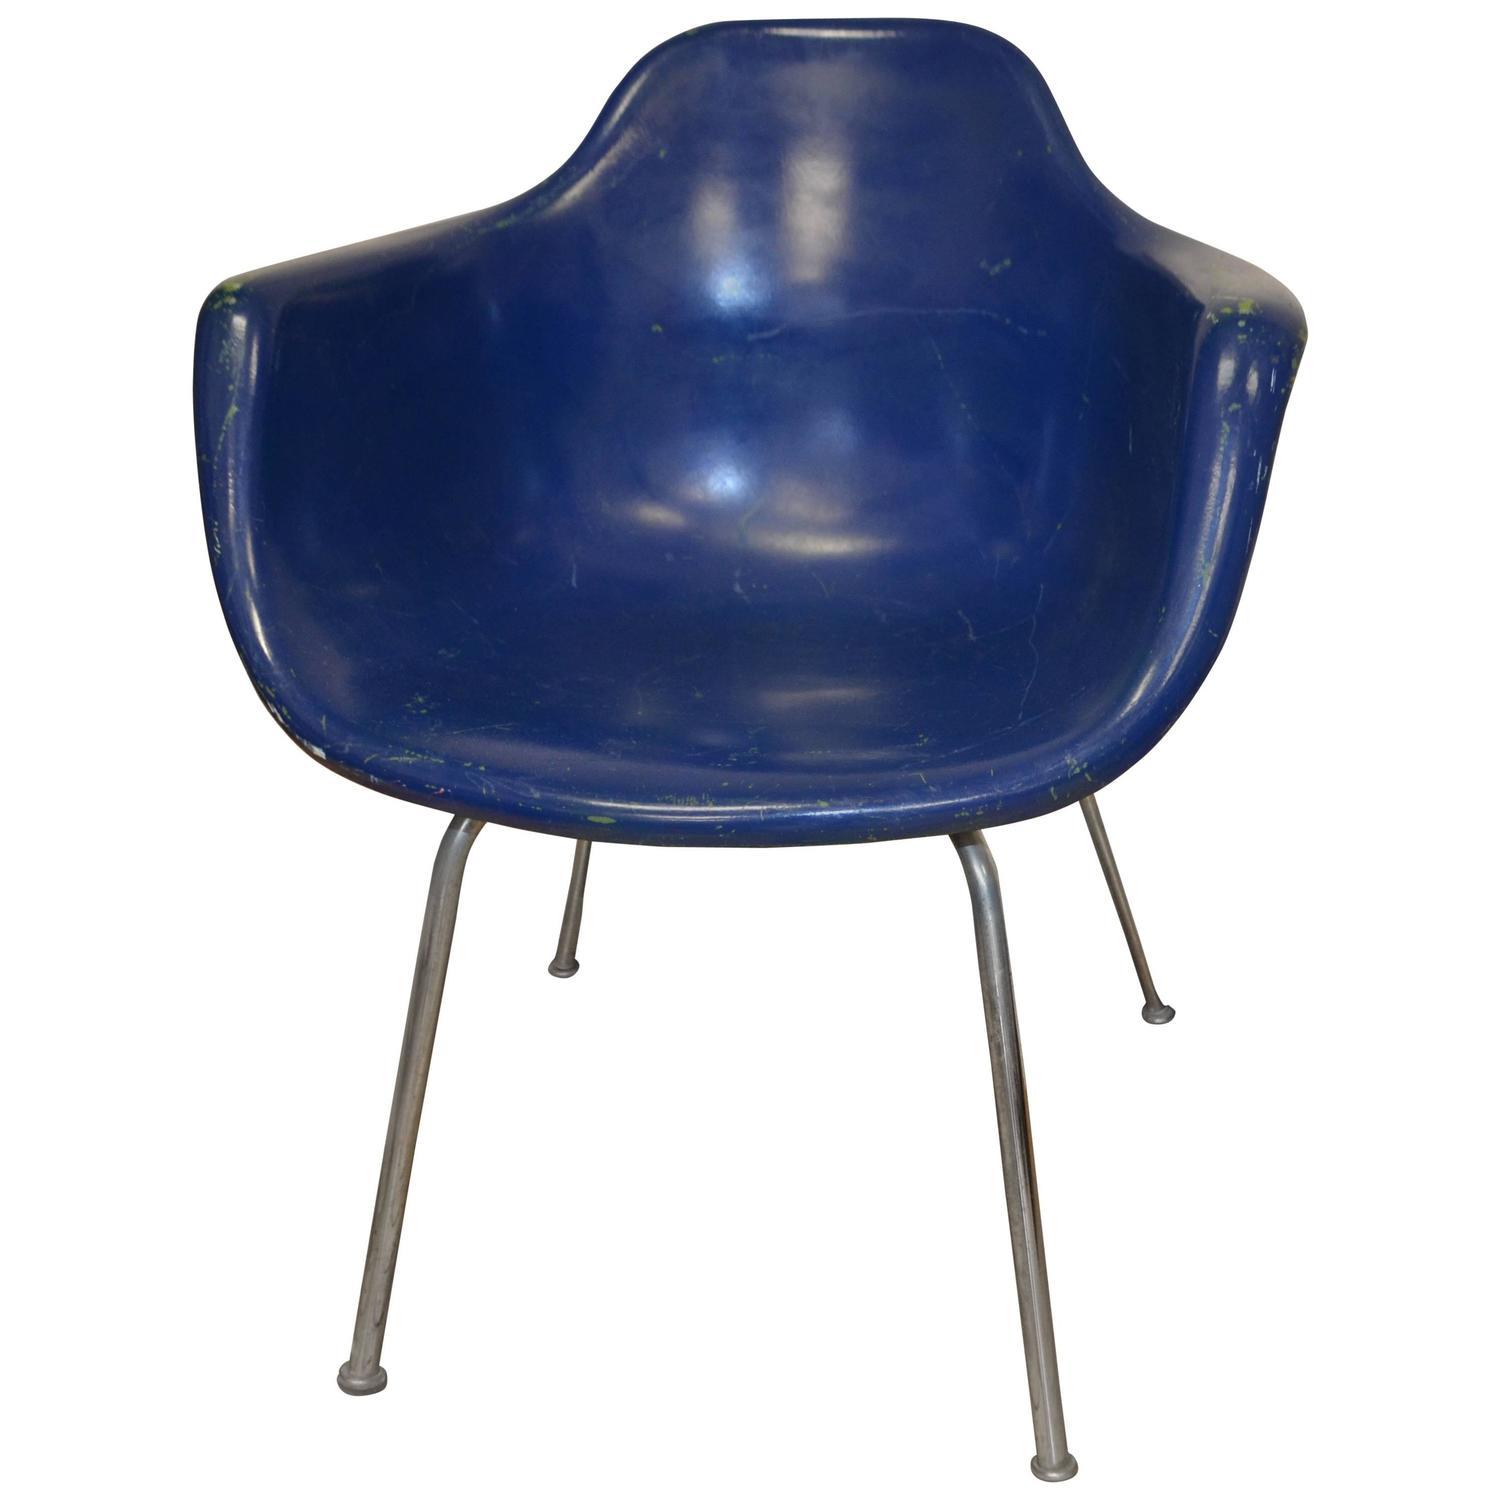 Midcentury Chairs Midcentury Miller Eames Era Fiberglass Shell Chair By